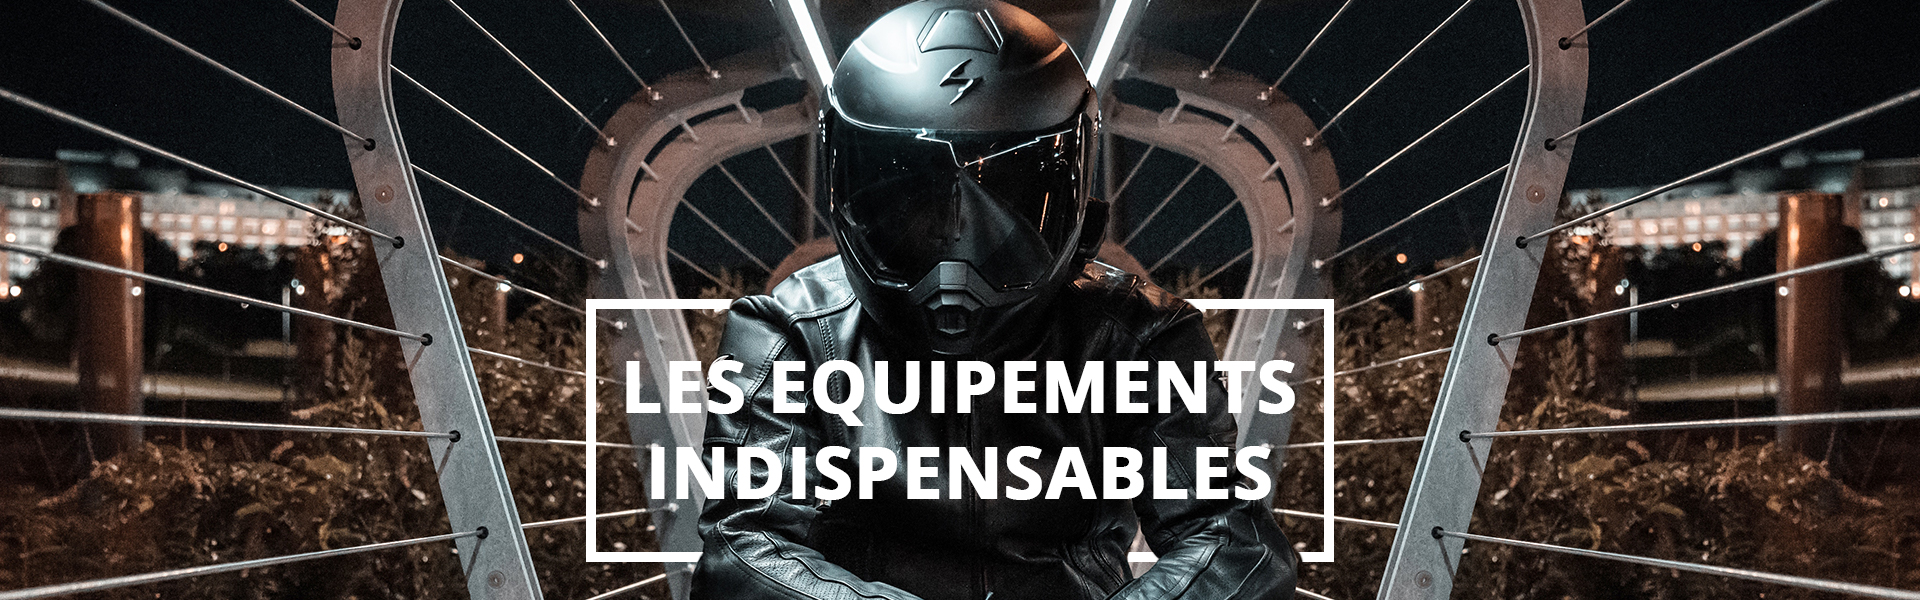 Equipements-pilotes-scooters